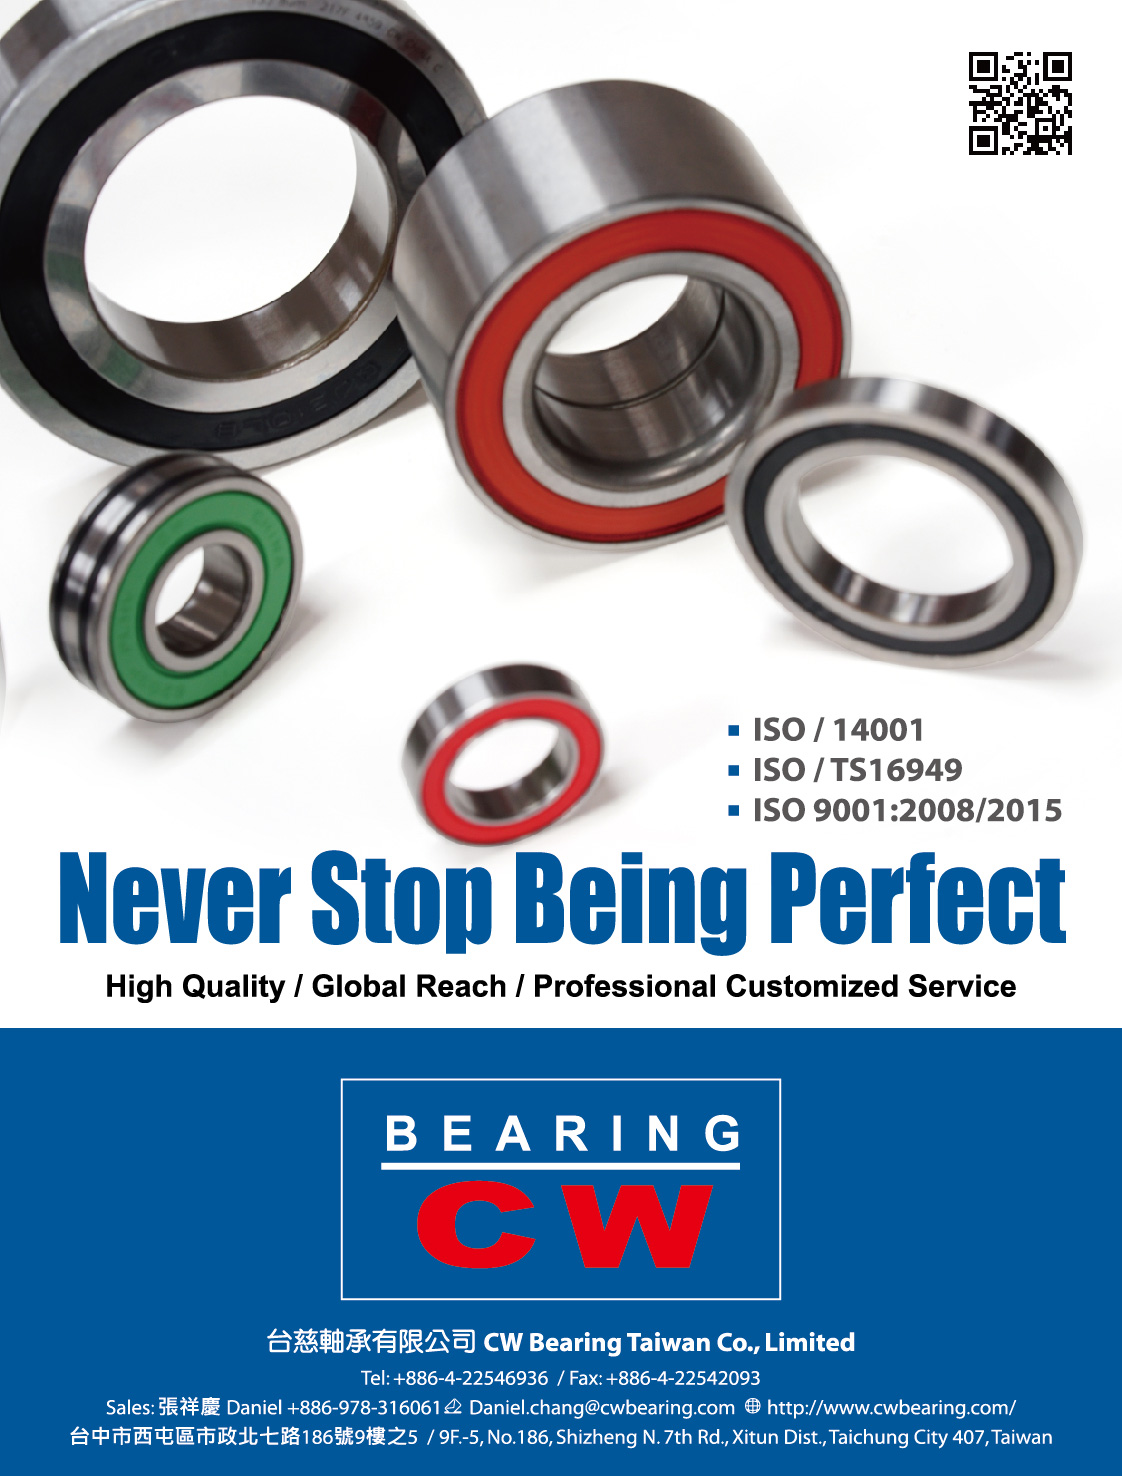 CW BEARING TAIWAN CO., LIMITED